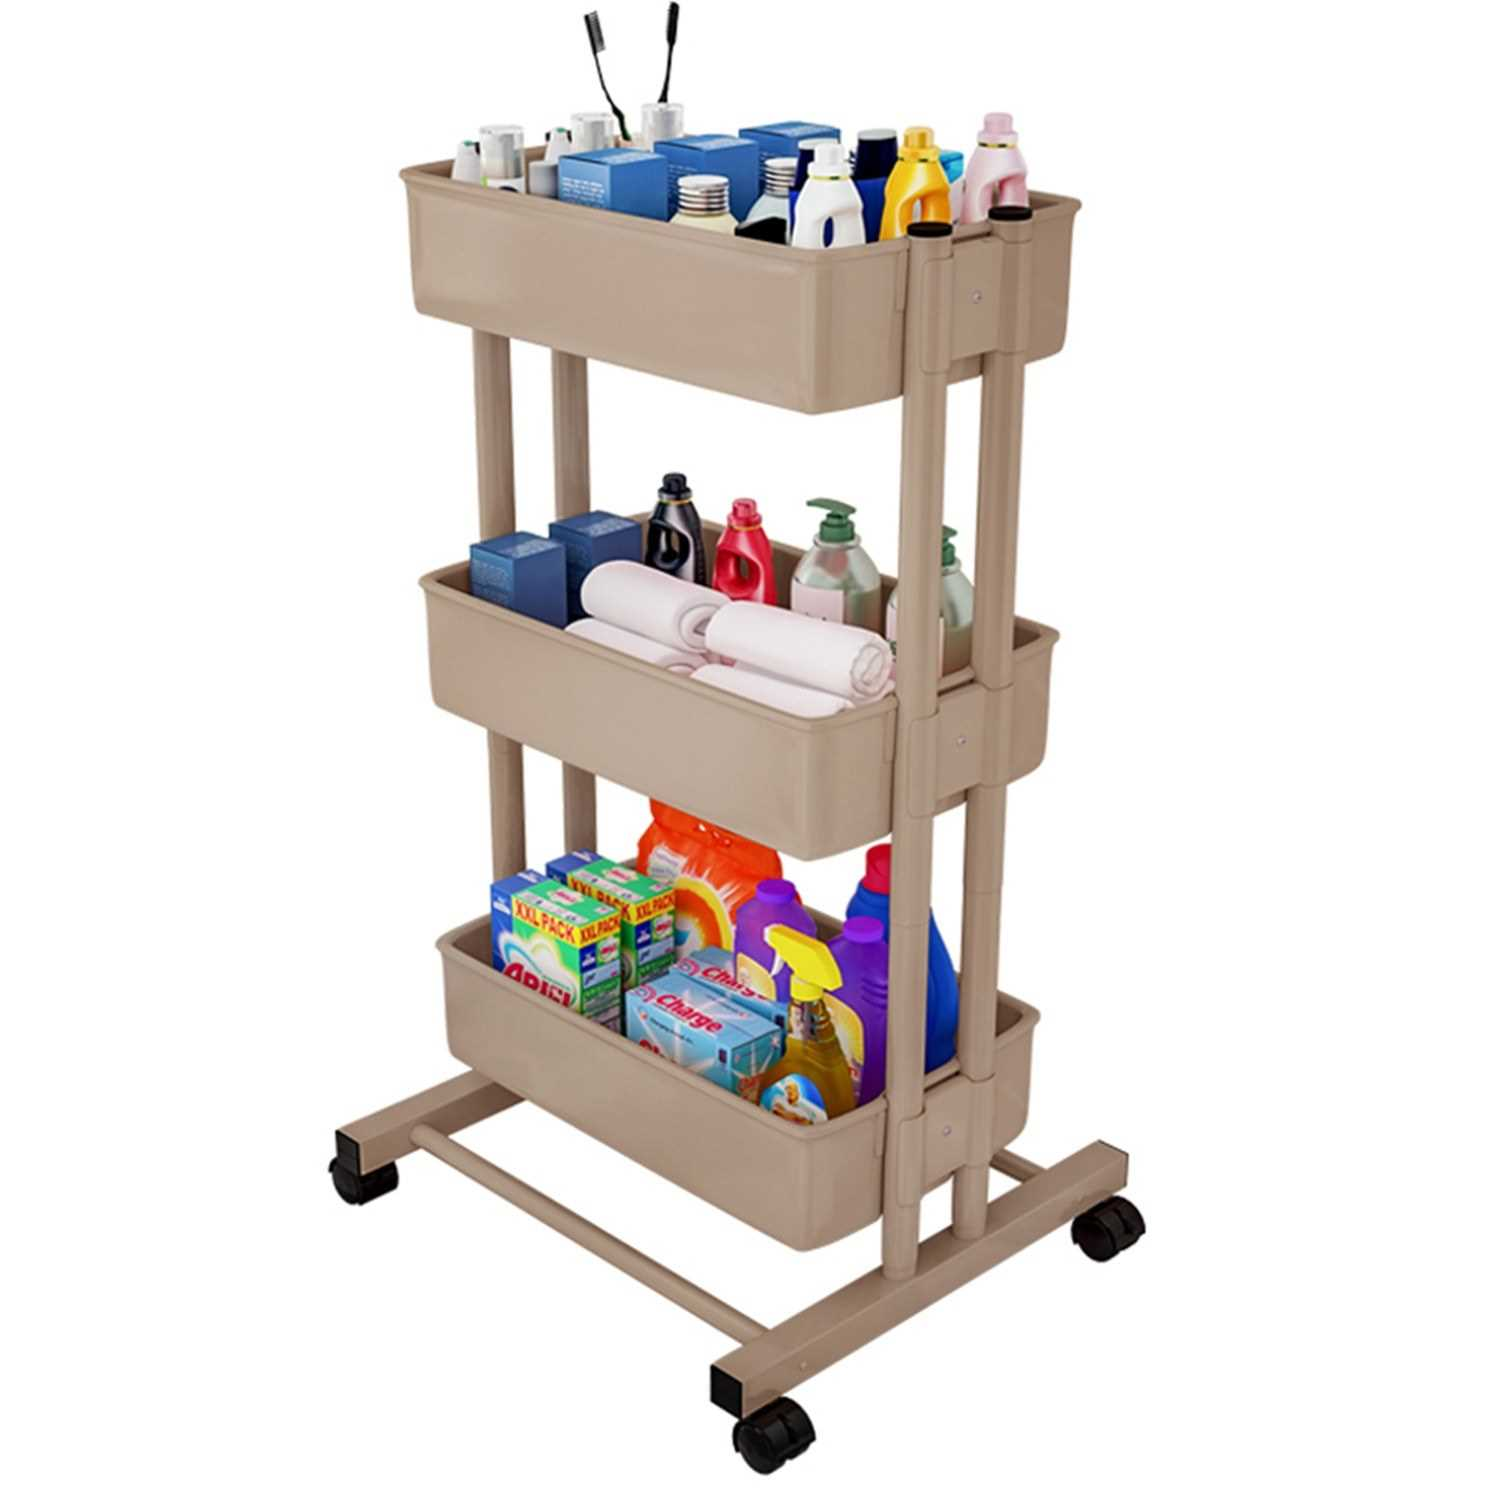 3 Tier Rolling Storage Utility Cart on Wheels Moveable Mobile Storage